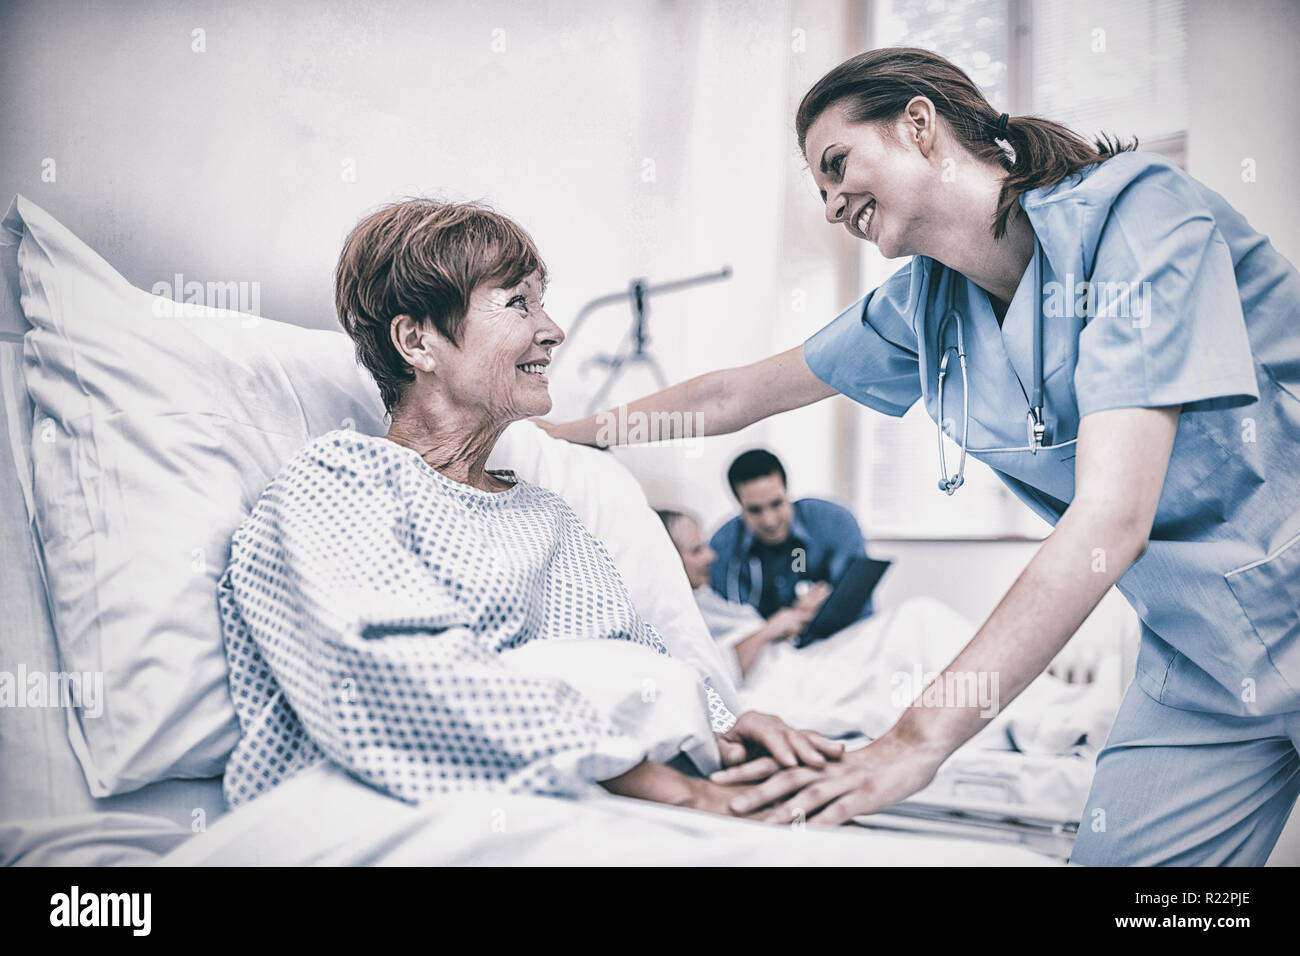 Nurse consoling a patient in hospital ward Stock Photo